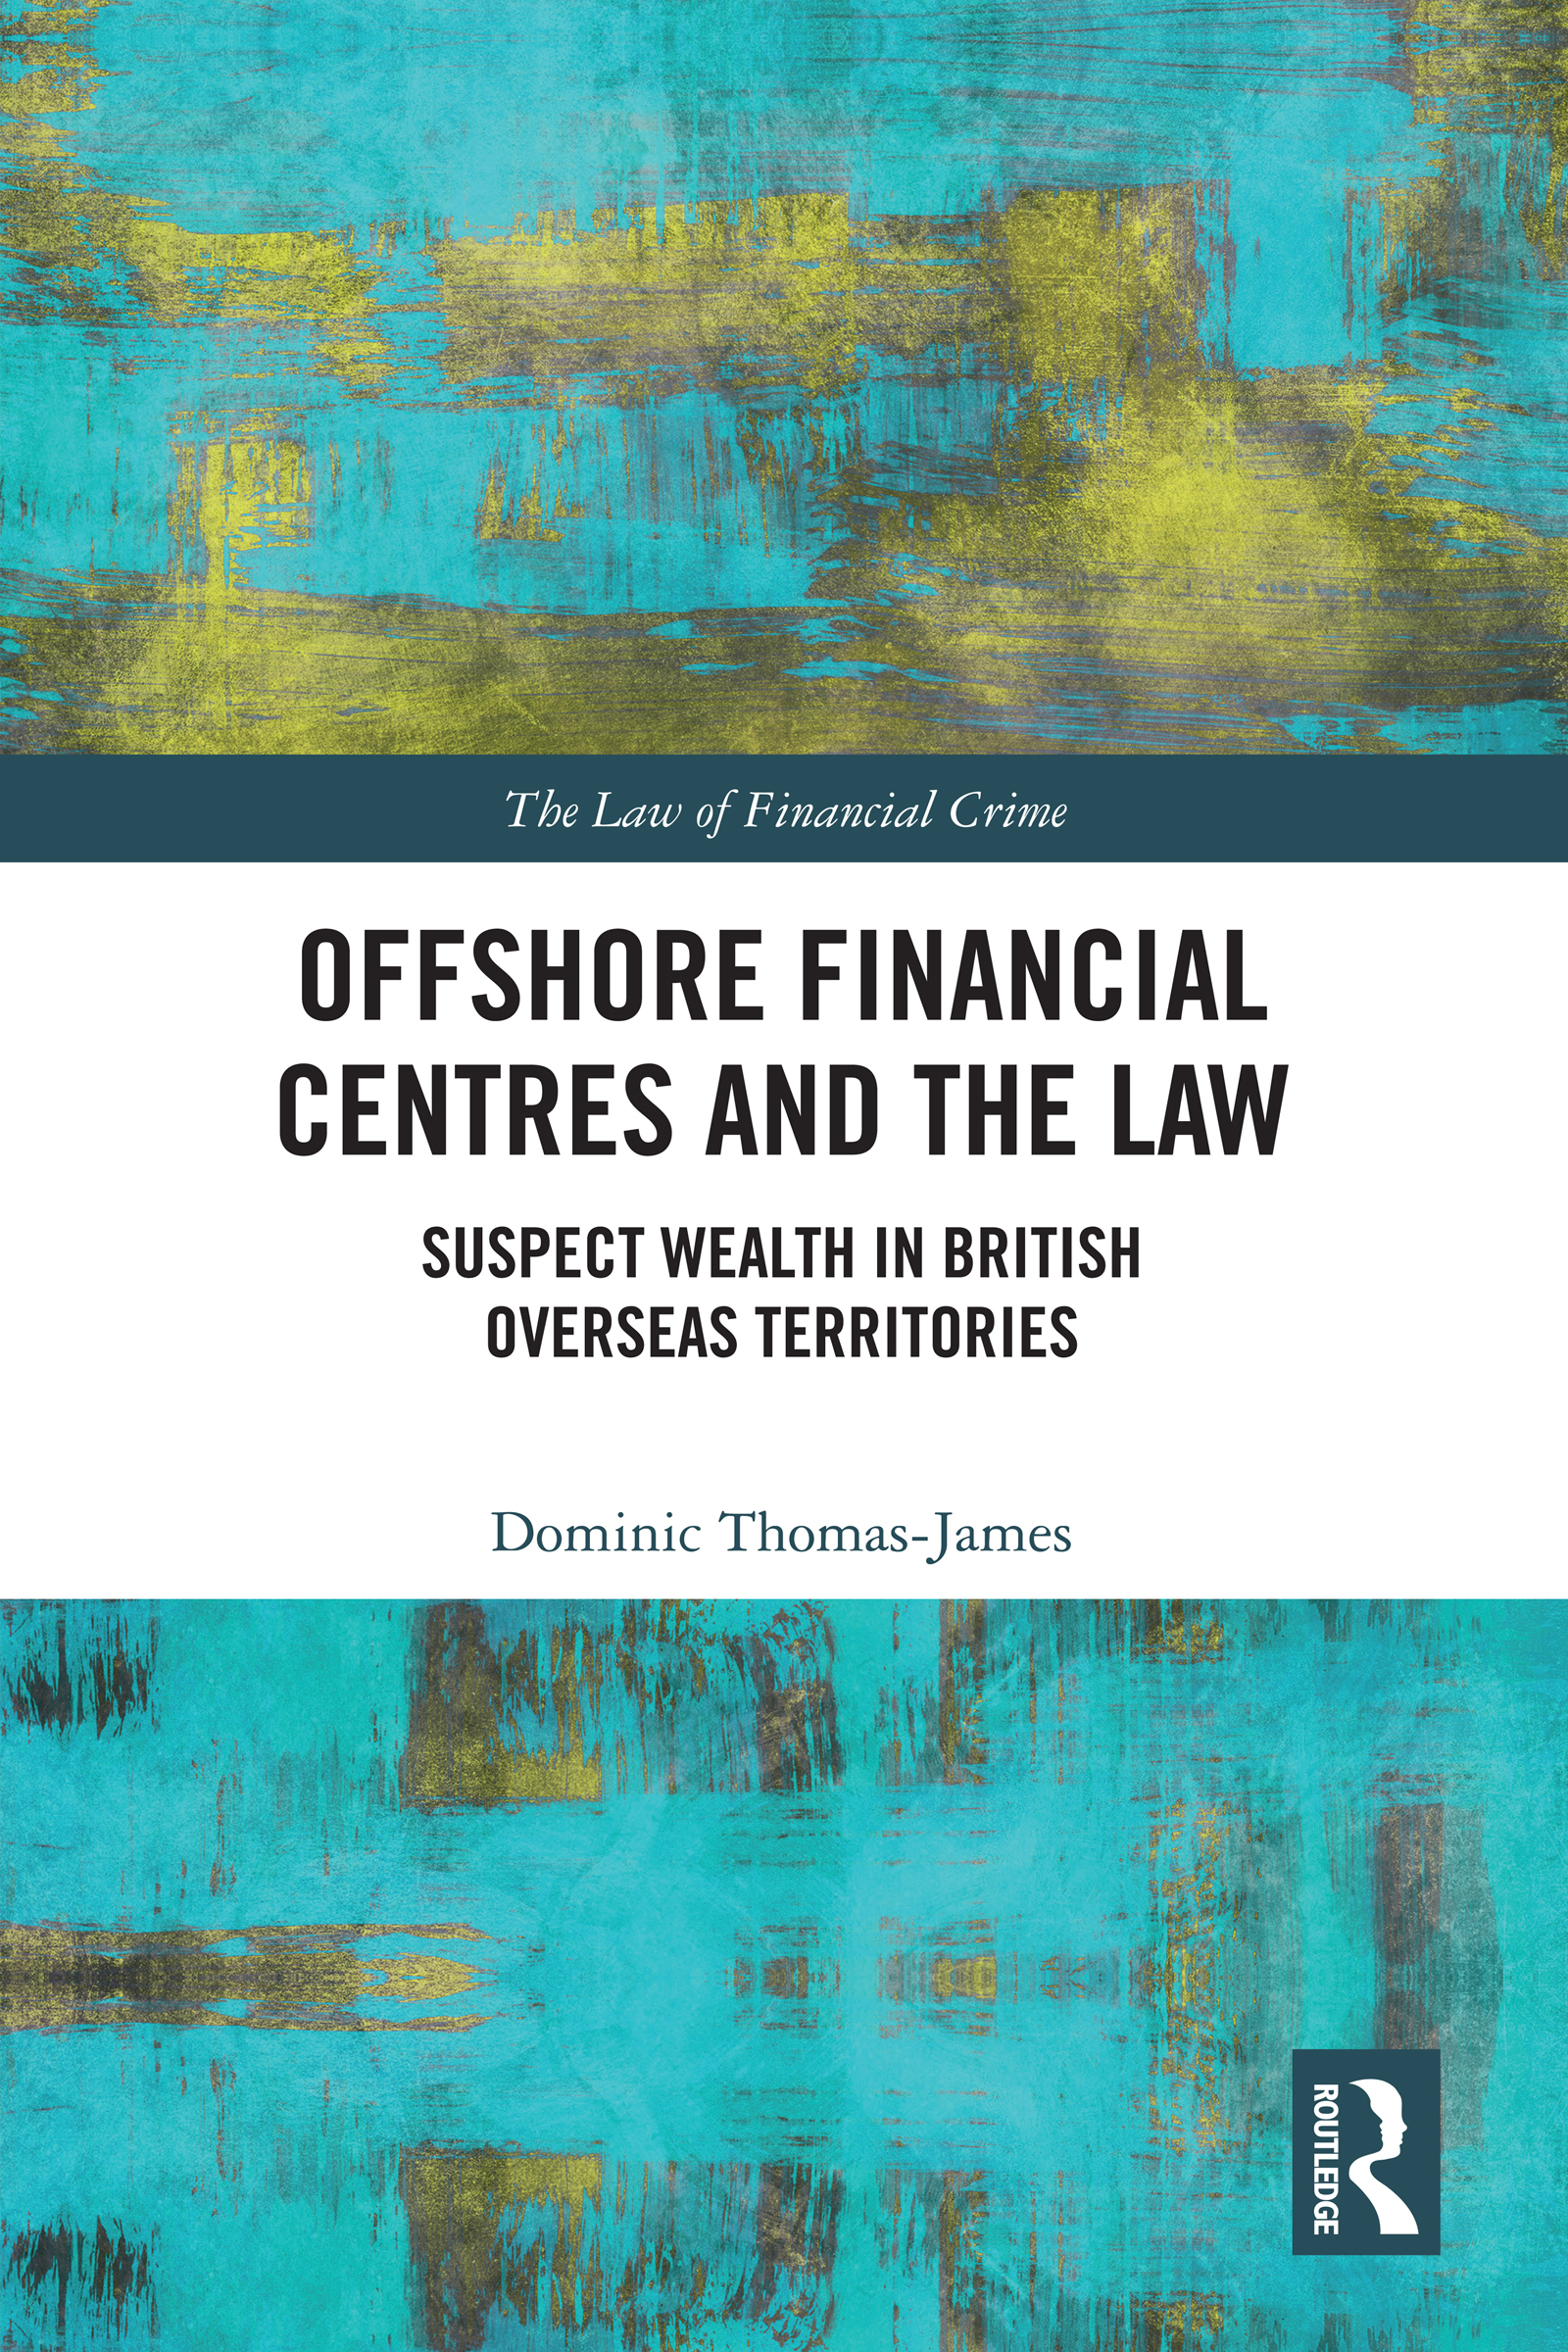 Offshore financial centres and the British Overseas Territories